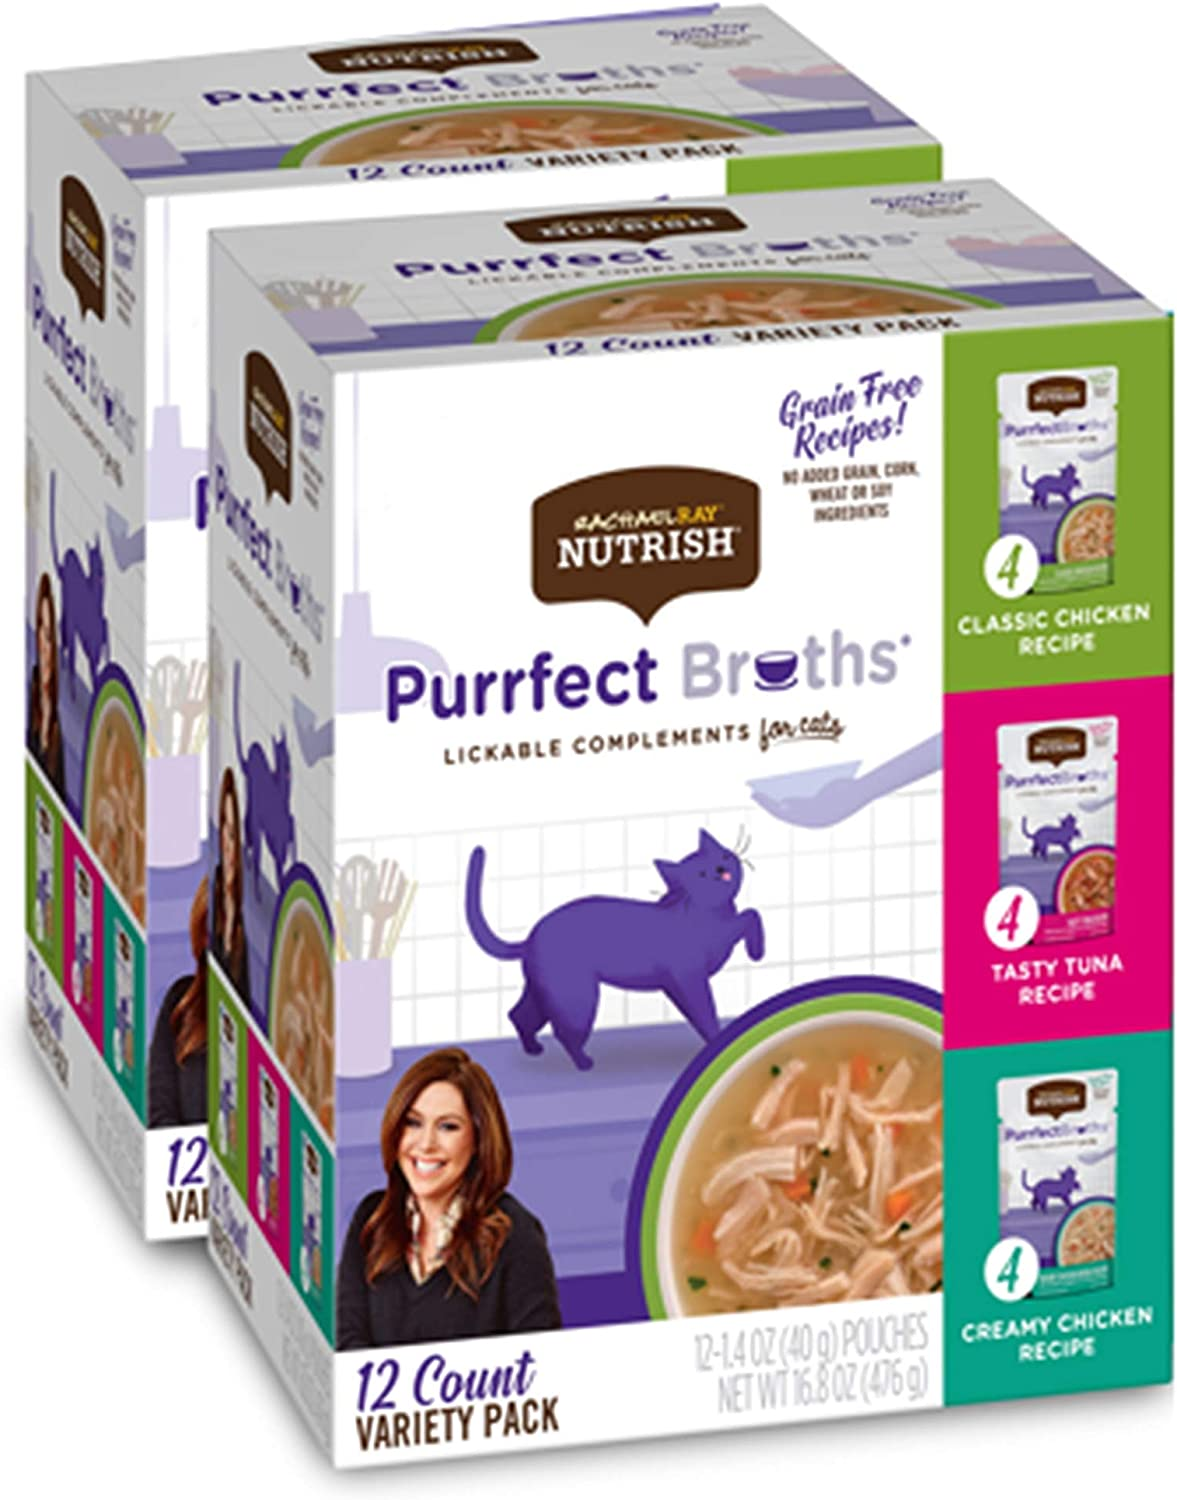 Rachael Ray Nutrish Purrfect Broths Natural Wet Cat Food, Variety Pack, 1.4 Ounce Pouch (Pack of 24), Grain Free